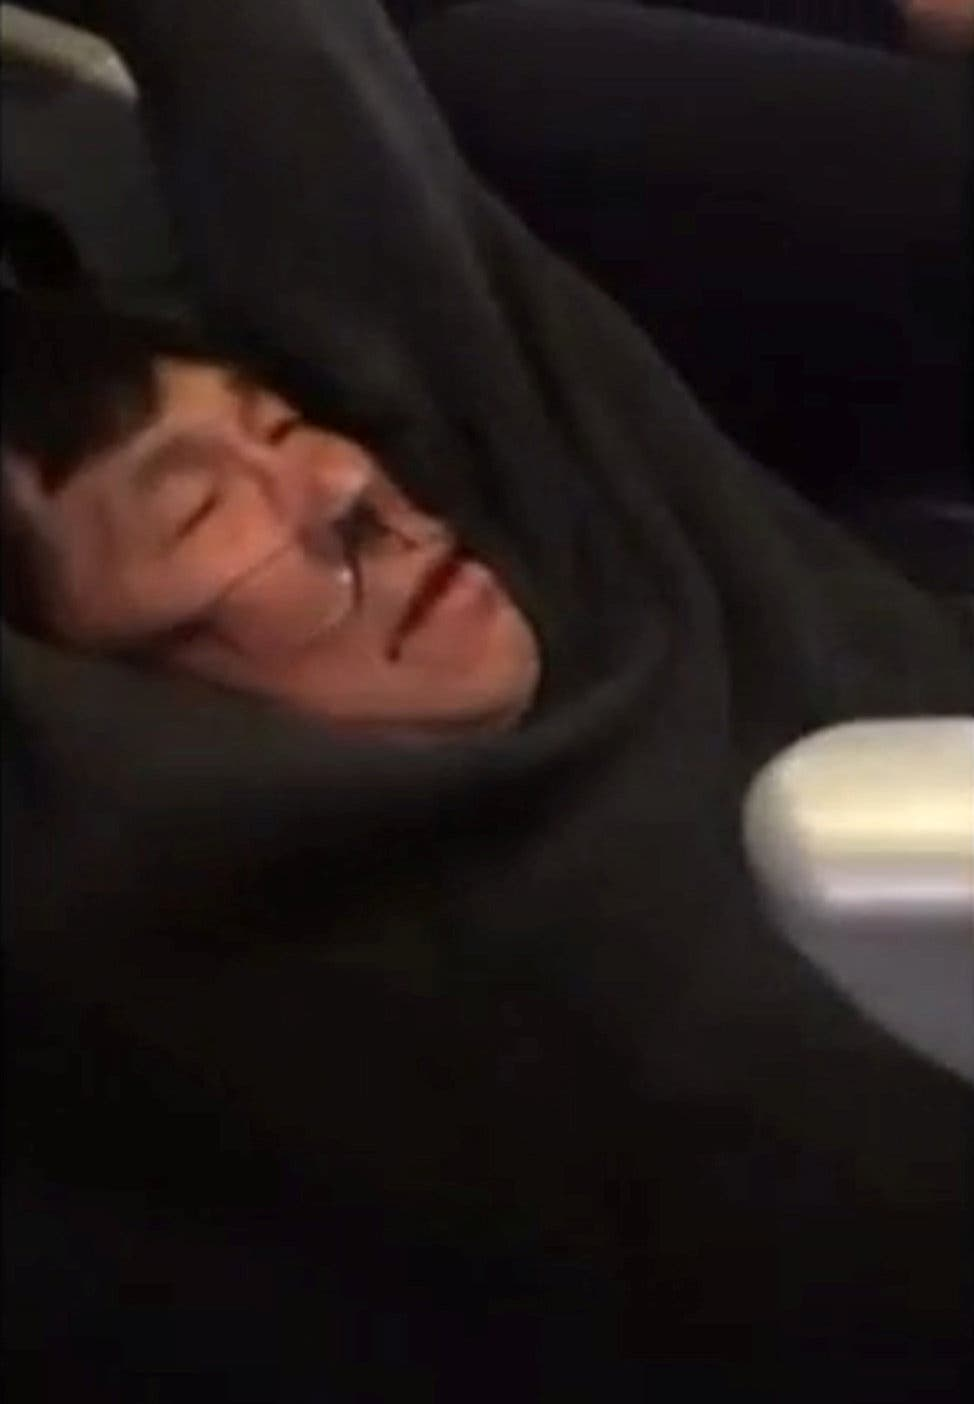 Videos that showed a man who appeared to be Asian being dragged off United Flight 3411. (Reuters)